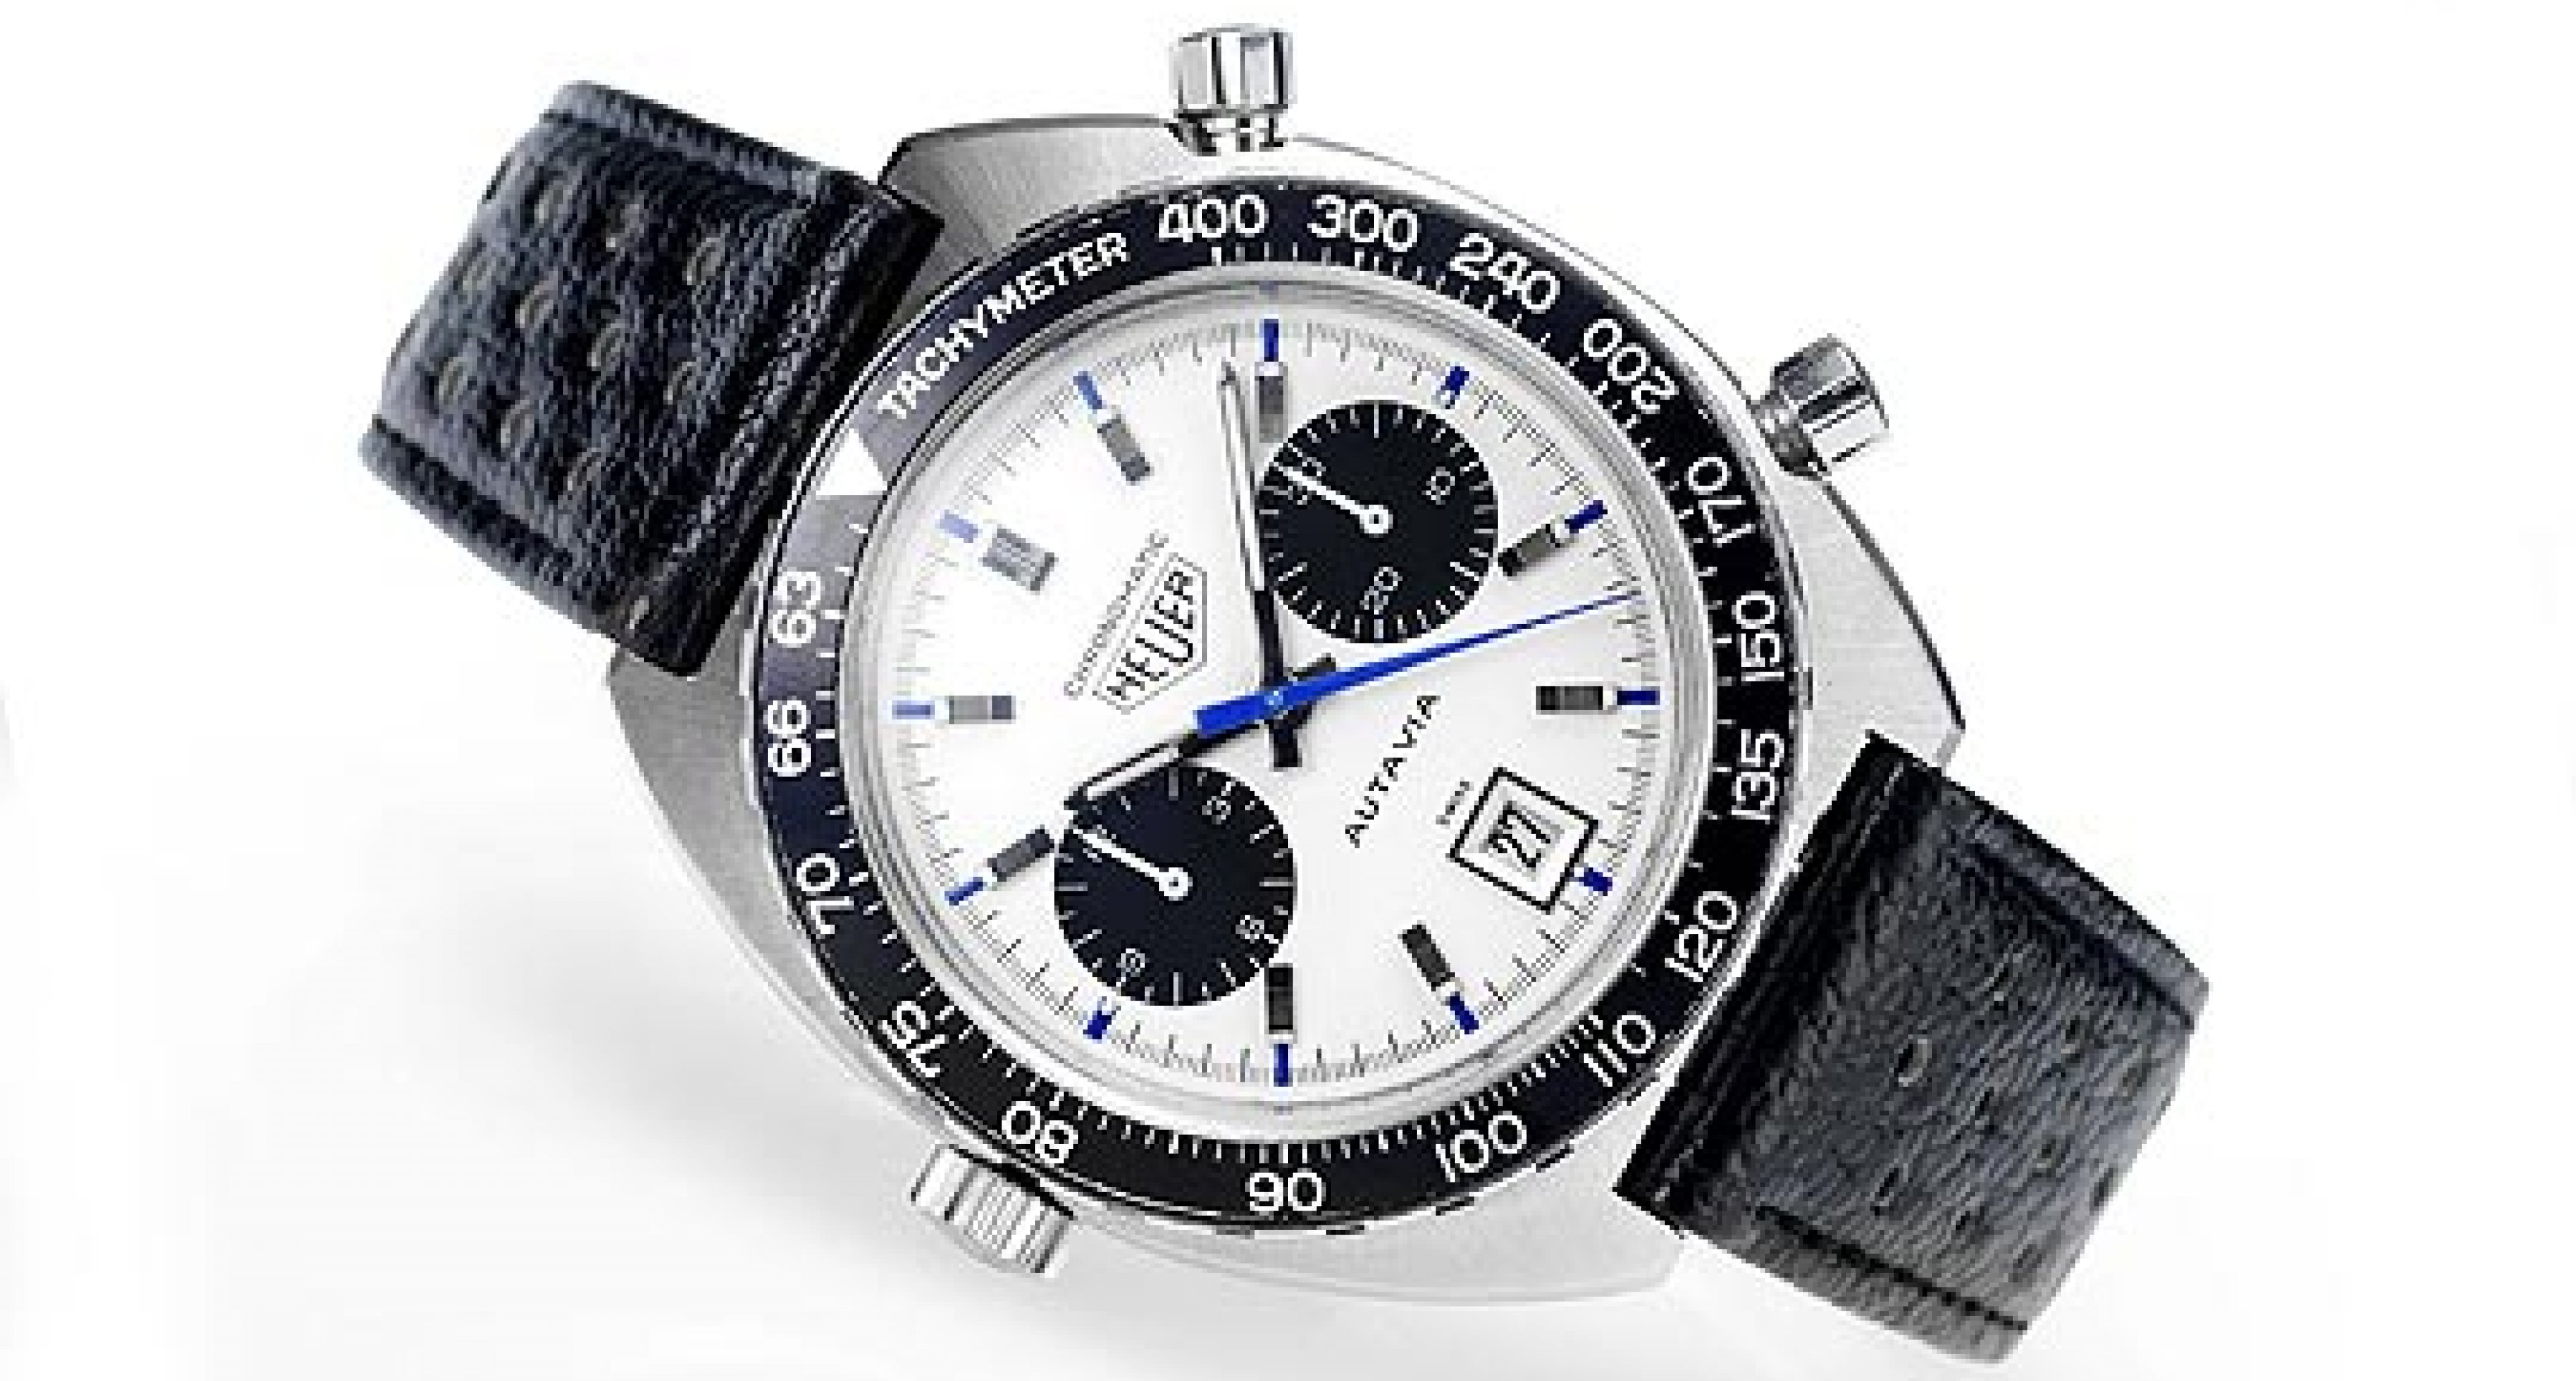 Bonhams to Sell 'Haslinger Collection' of Heuer Watches this December